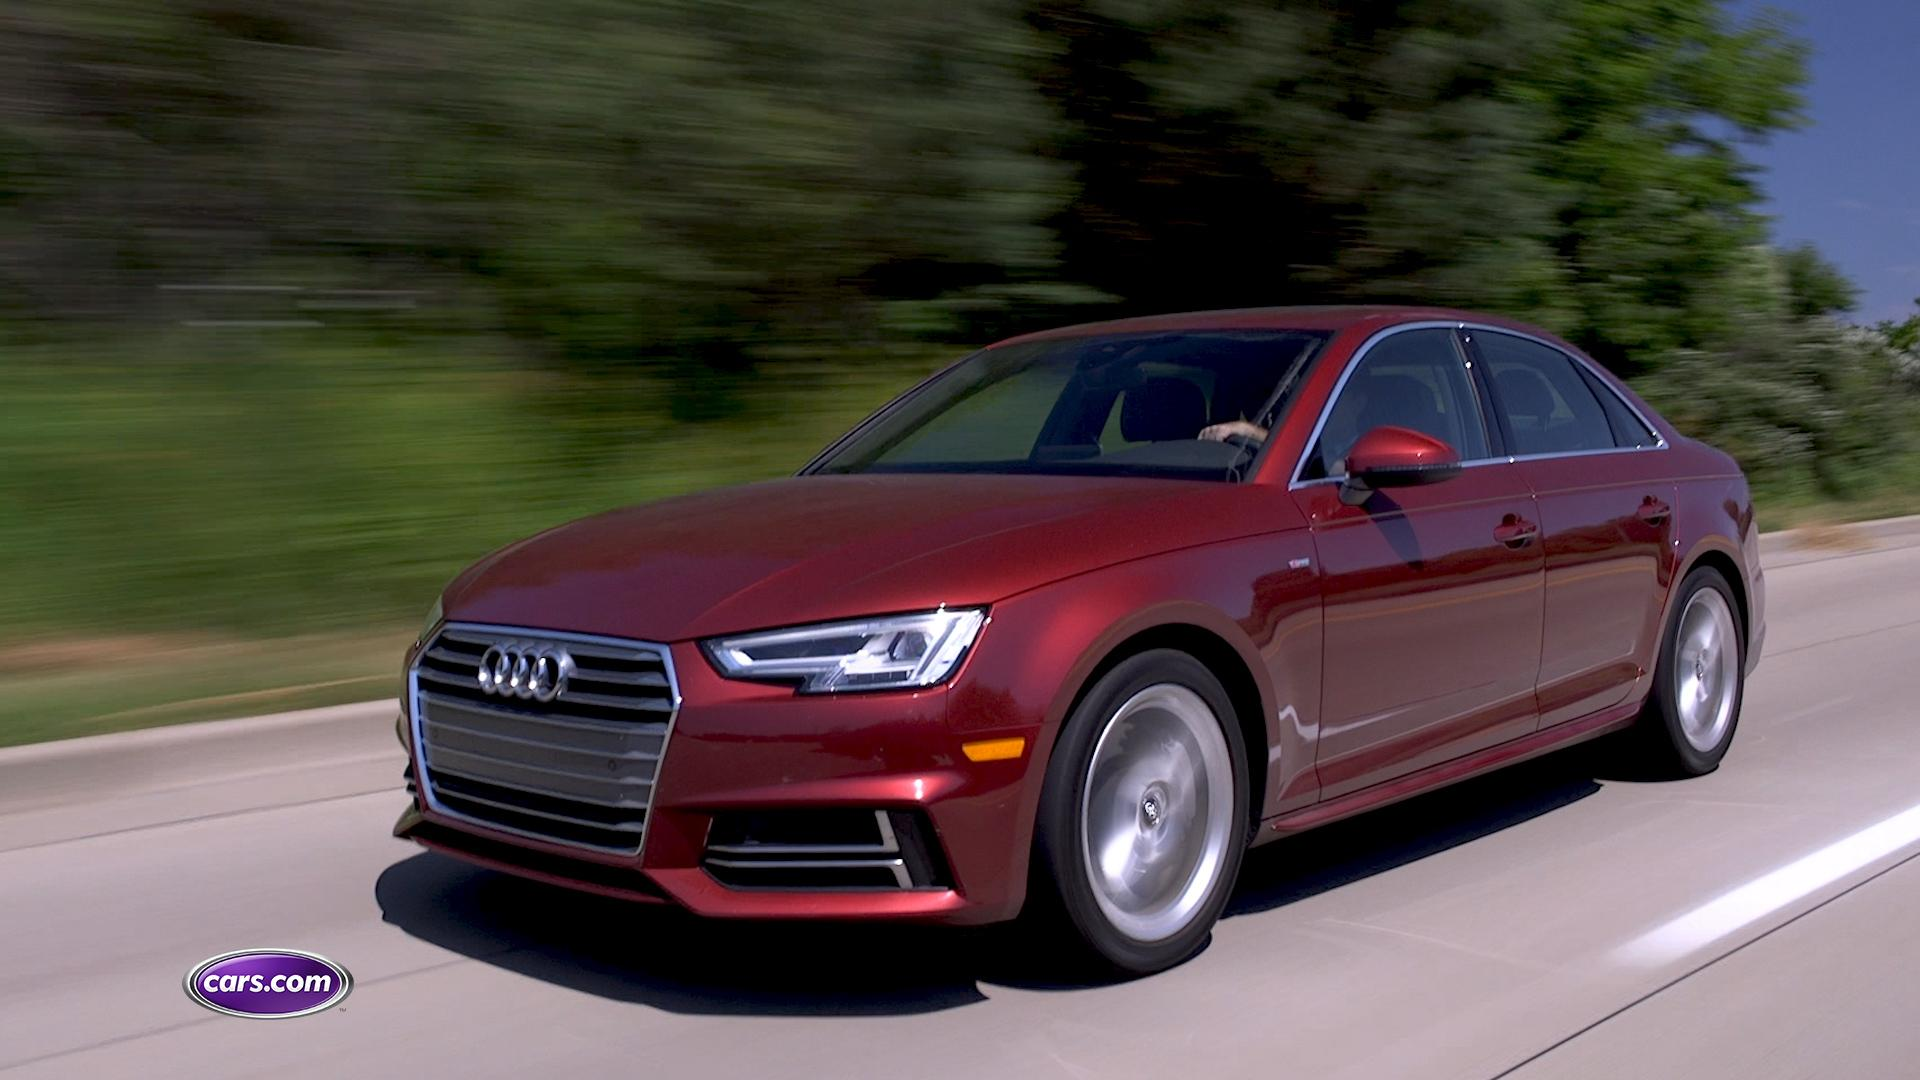 Audi Latest Models Pricing and Ratings